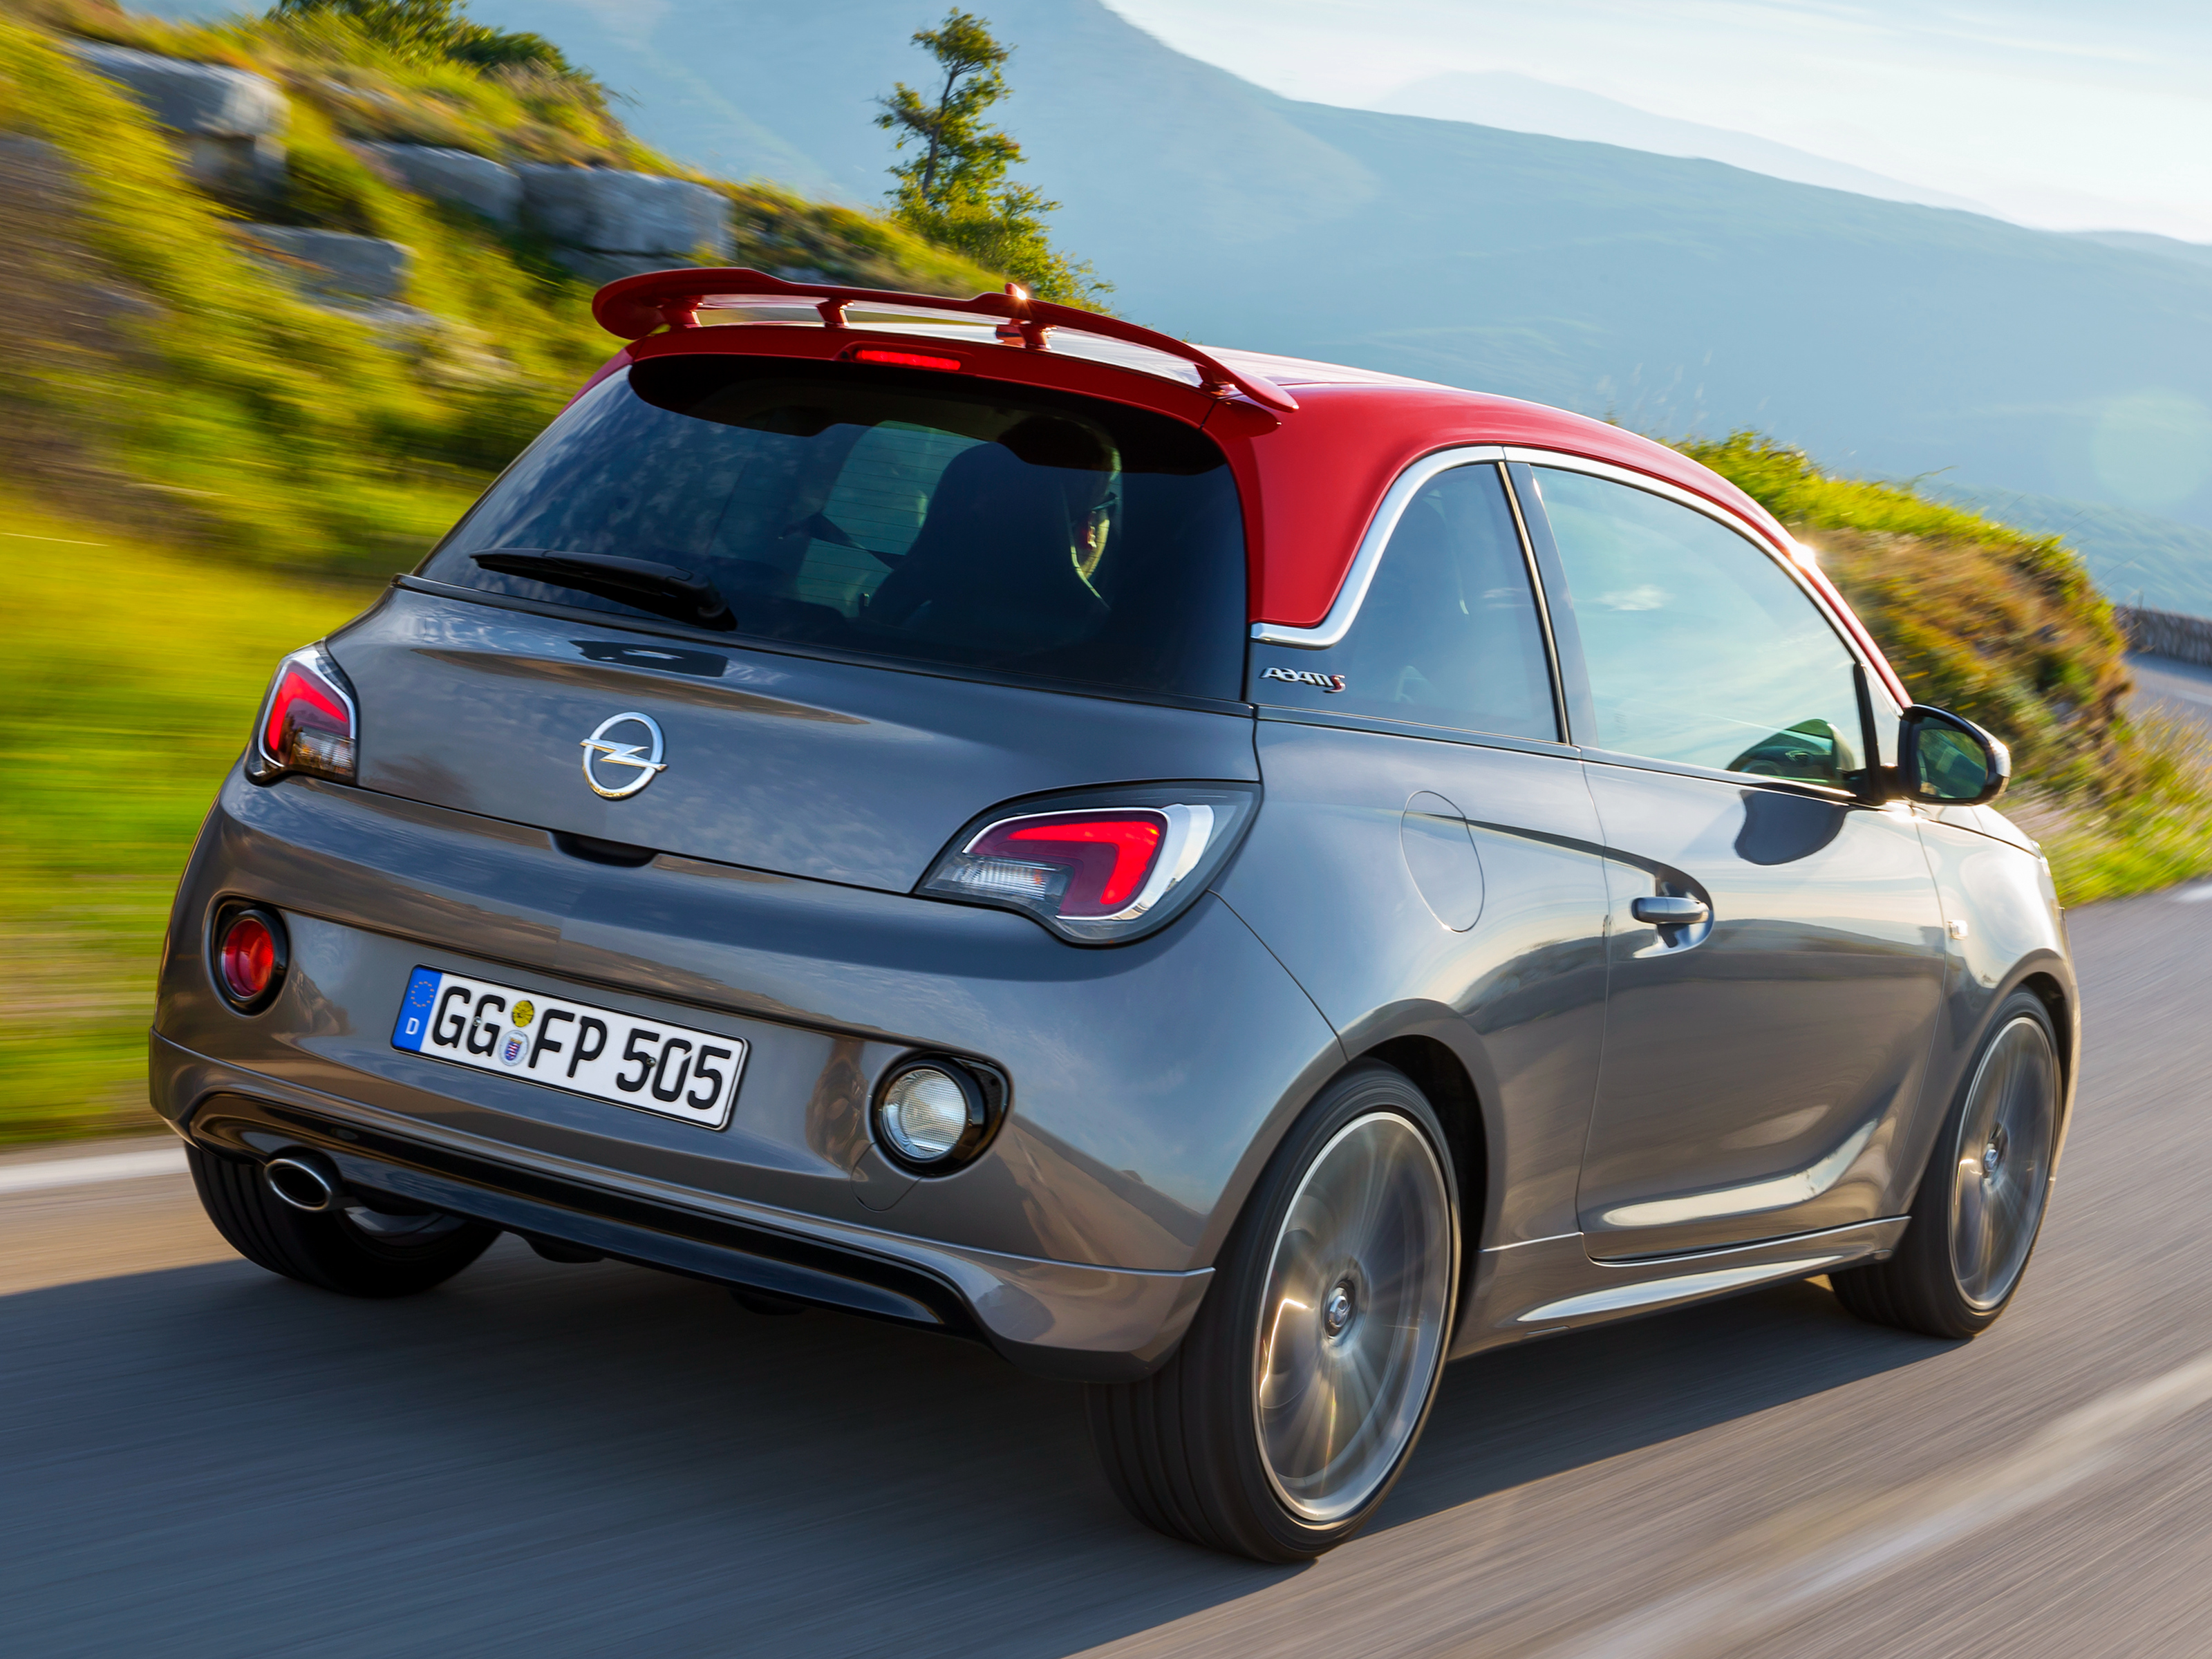 opel adam s 150 hp pocket rocket revealed ahead of paris. Black Bedroom Furniture Sets. Home Design Ideas